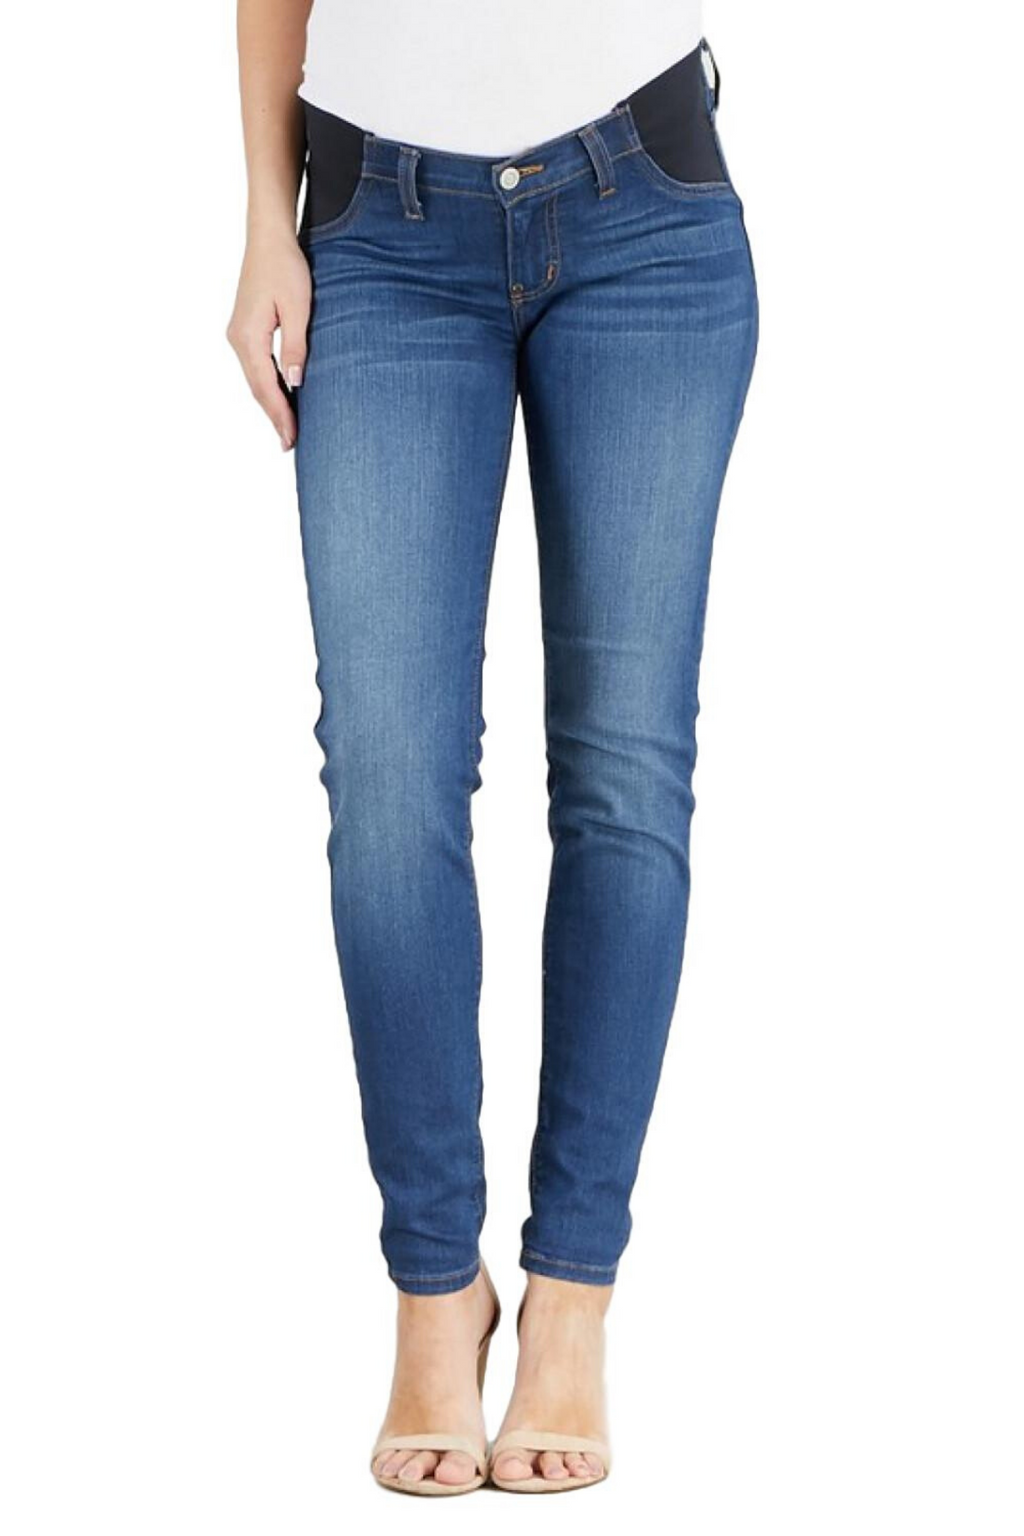 "Judy Blue Maternity Jeans Collection: Spring 2020 Color: Dark Wash Cut: Skinny, 29"" Inseam Rise: Low-Rise with Stretch Band, 6"" Material: 59% COTTON / 23% Cotton 17% POLYESTER / 1% SPANDEX Style #: JB8395 Please contact us for any specific measurements or size details."